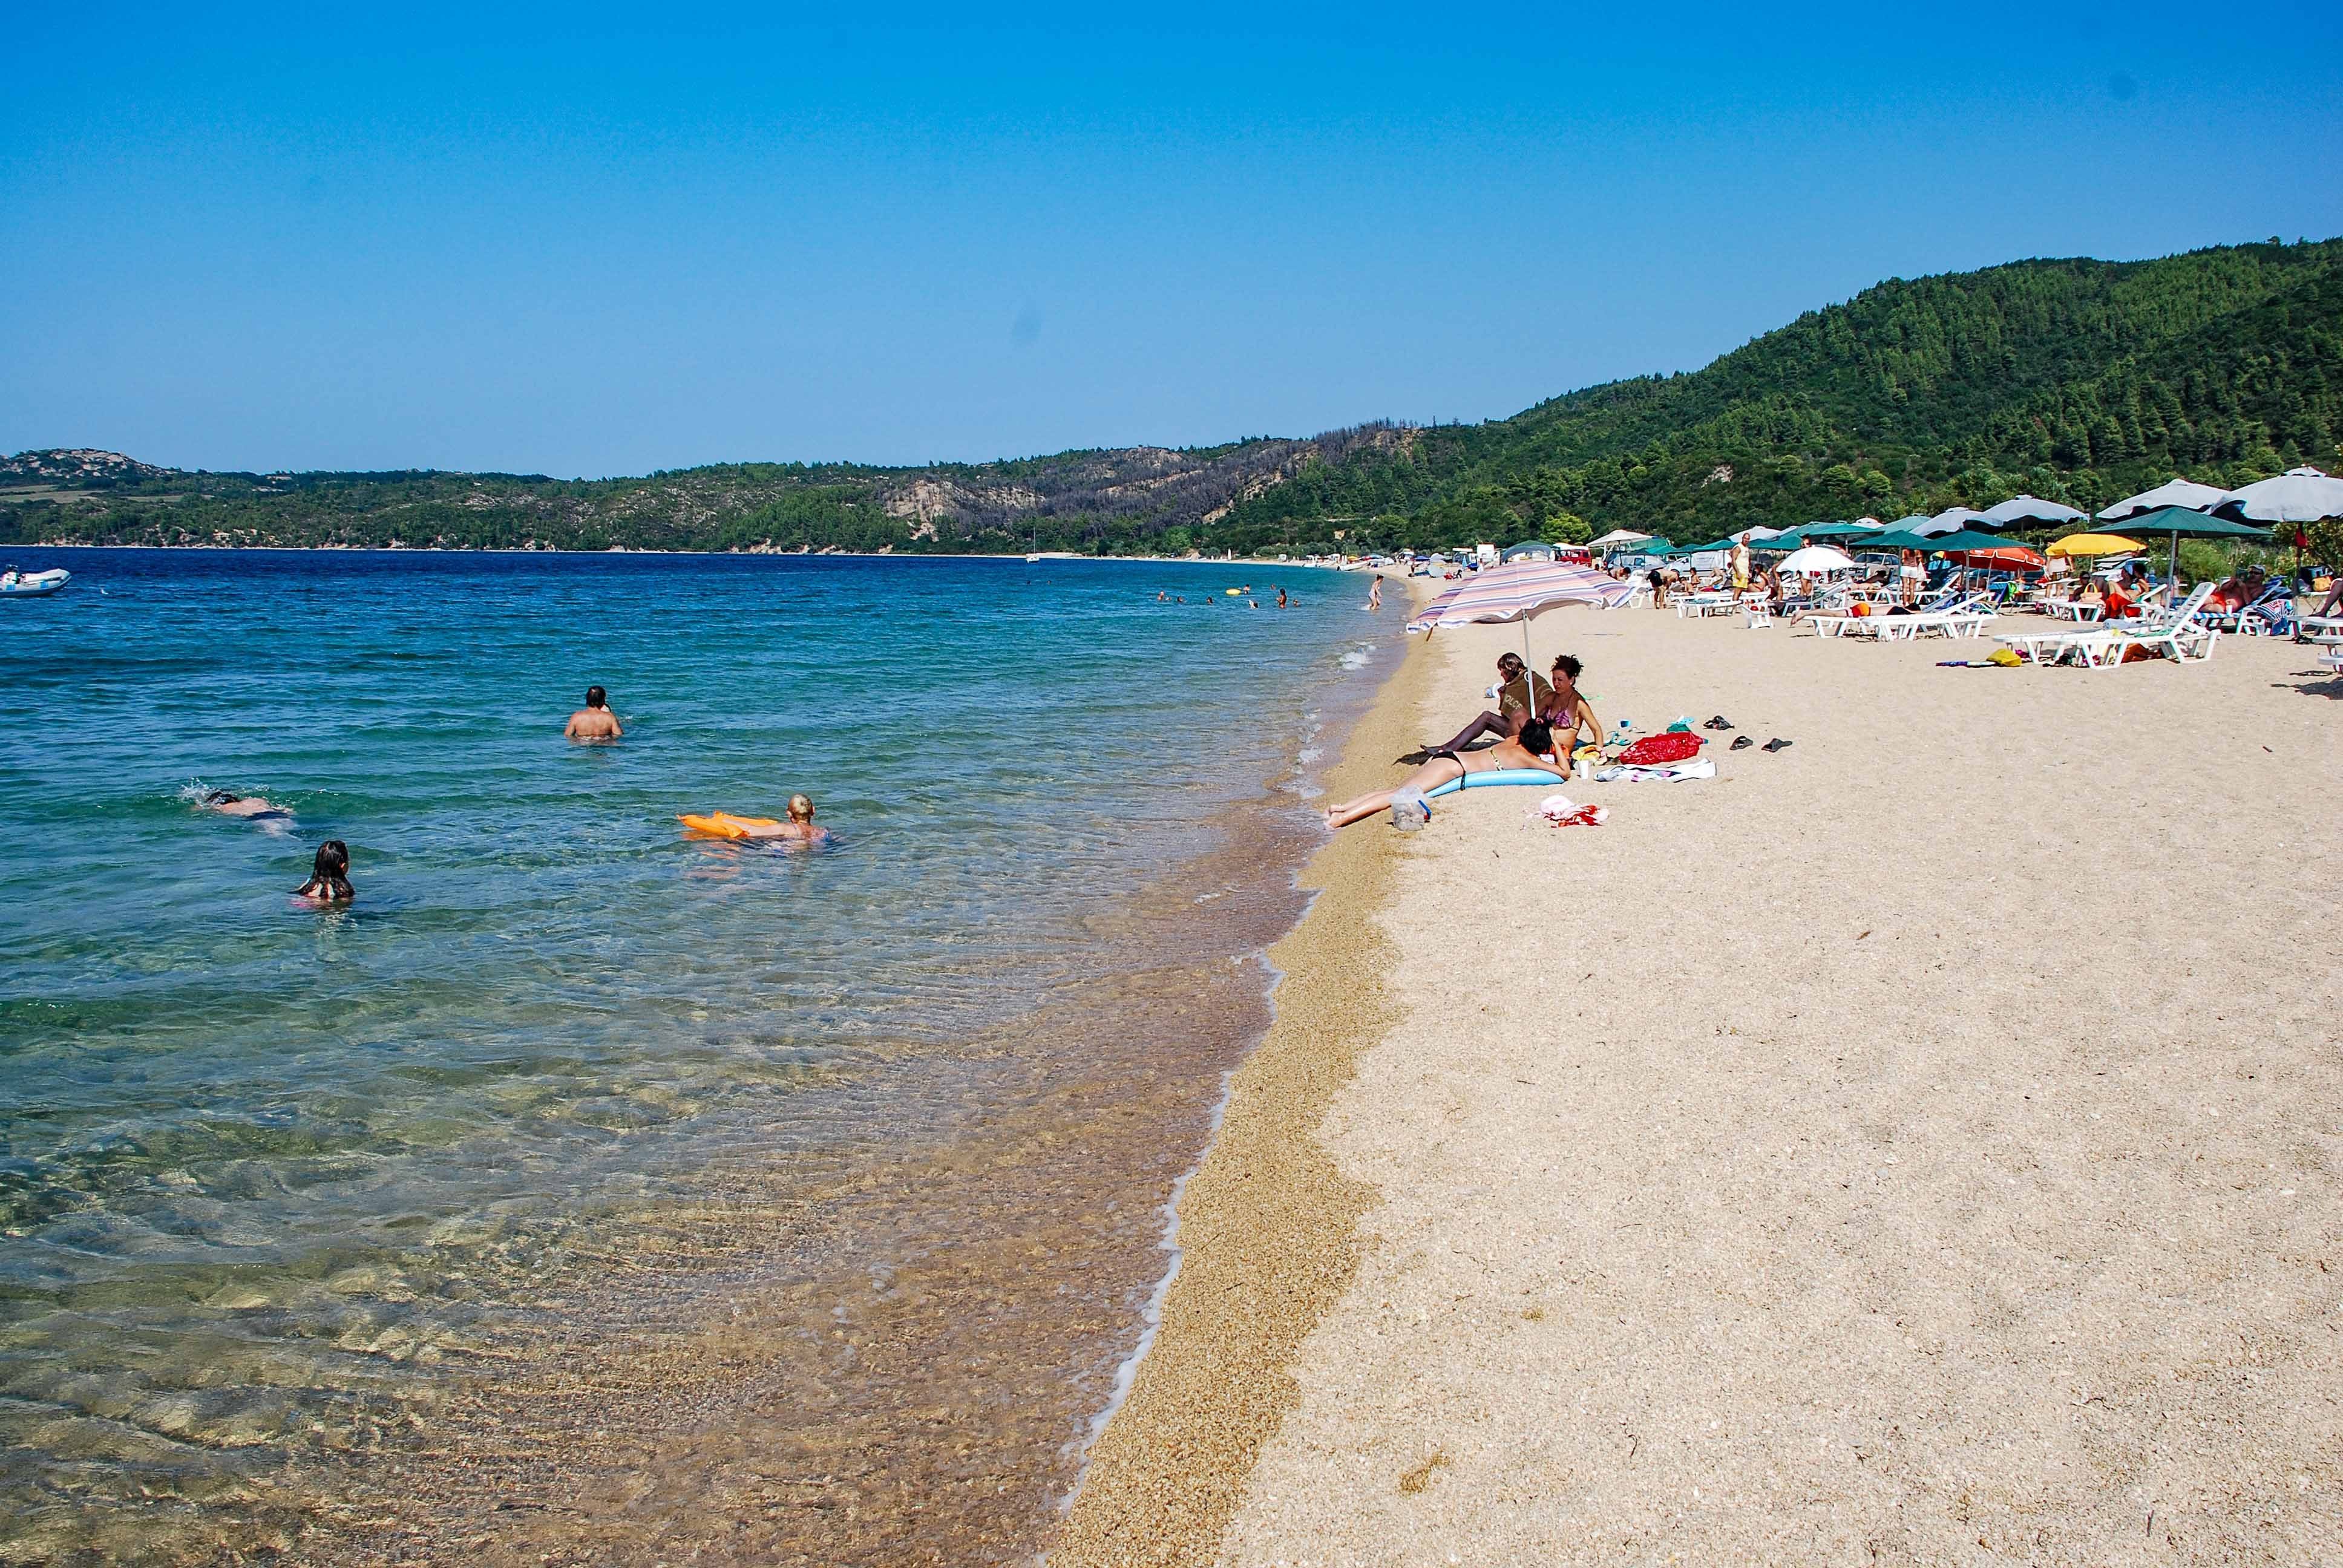 East Komitsa beach, Ierissos gulf, Halkidiki, Greece